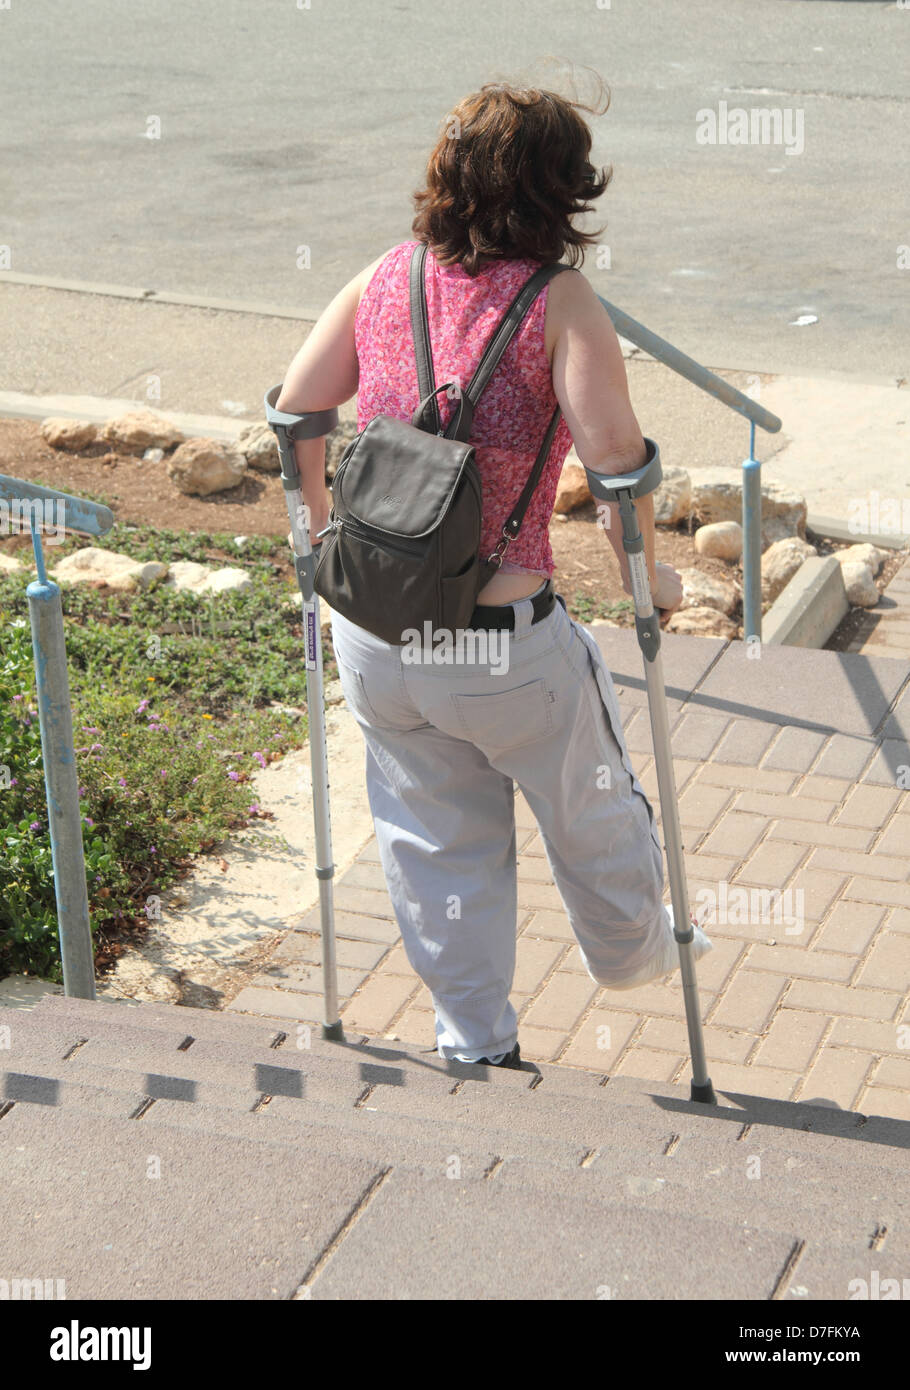 Unsafe access for handicapped person - Stock Image